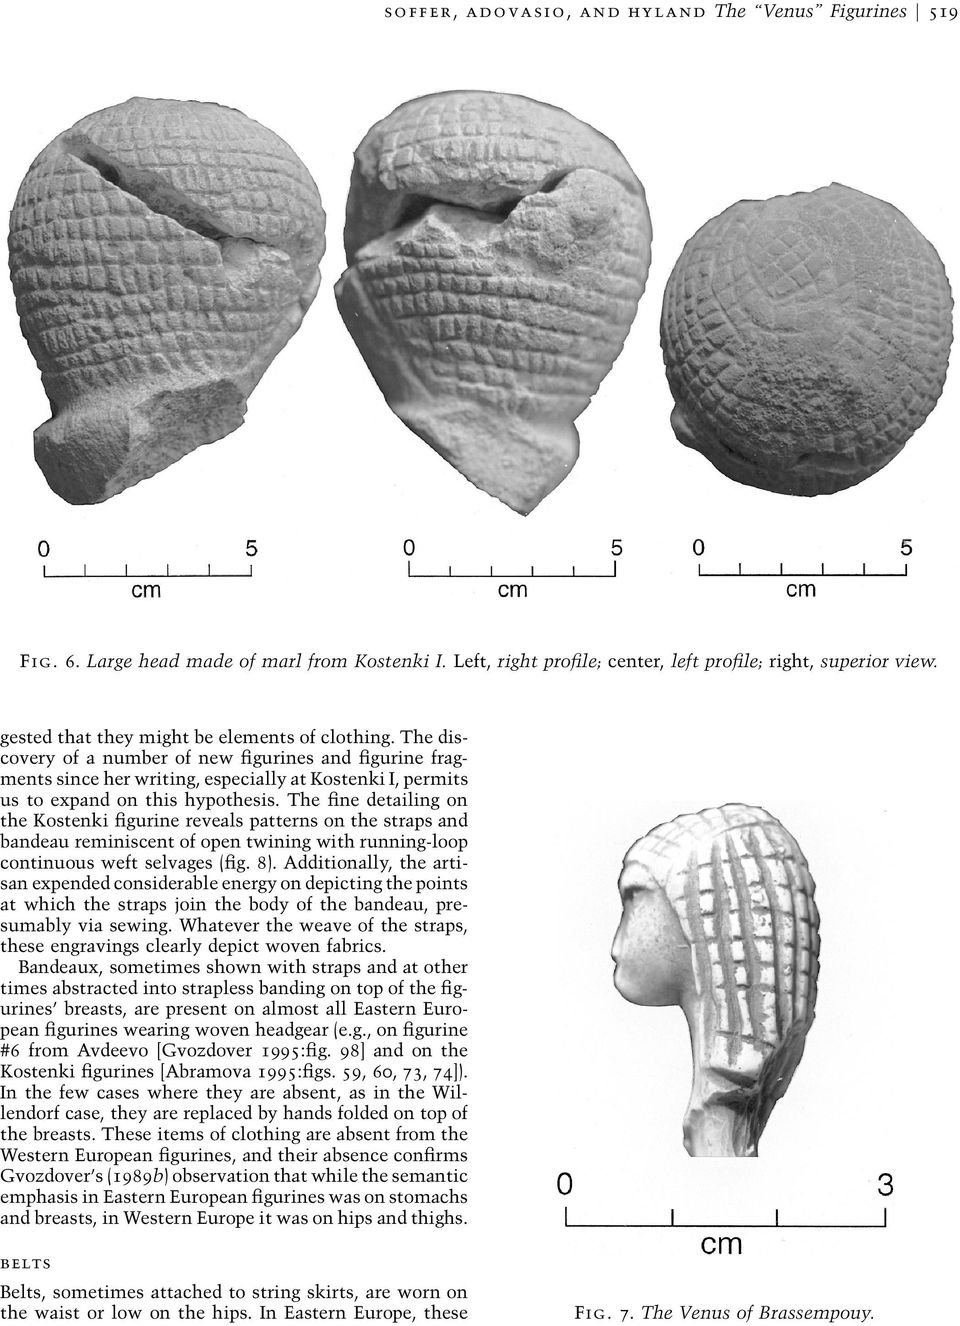 The fine detailing on the Kostenki figurine reveals patterns on the straps and bandeau reminiscent of open twining with running-loop continuous weft selvages (fig. 8).